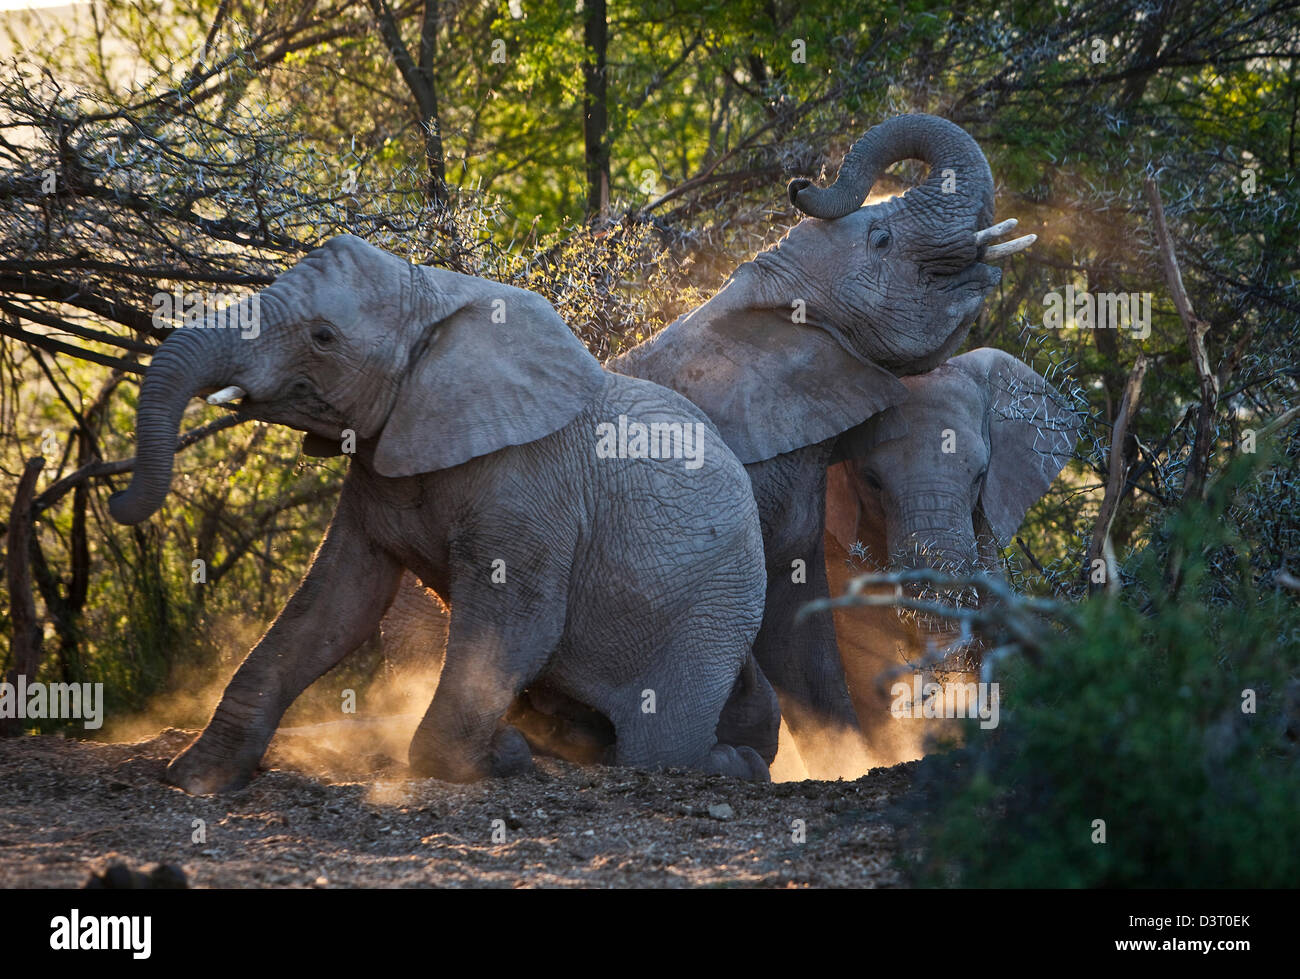 Elephants cleaning in dust, Buffelsdrift Game Lodge, South Africa - Stock Image